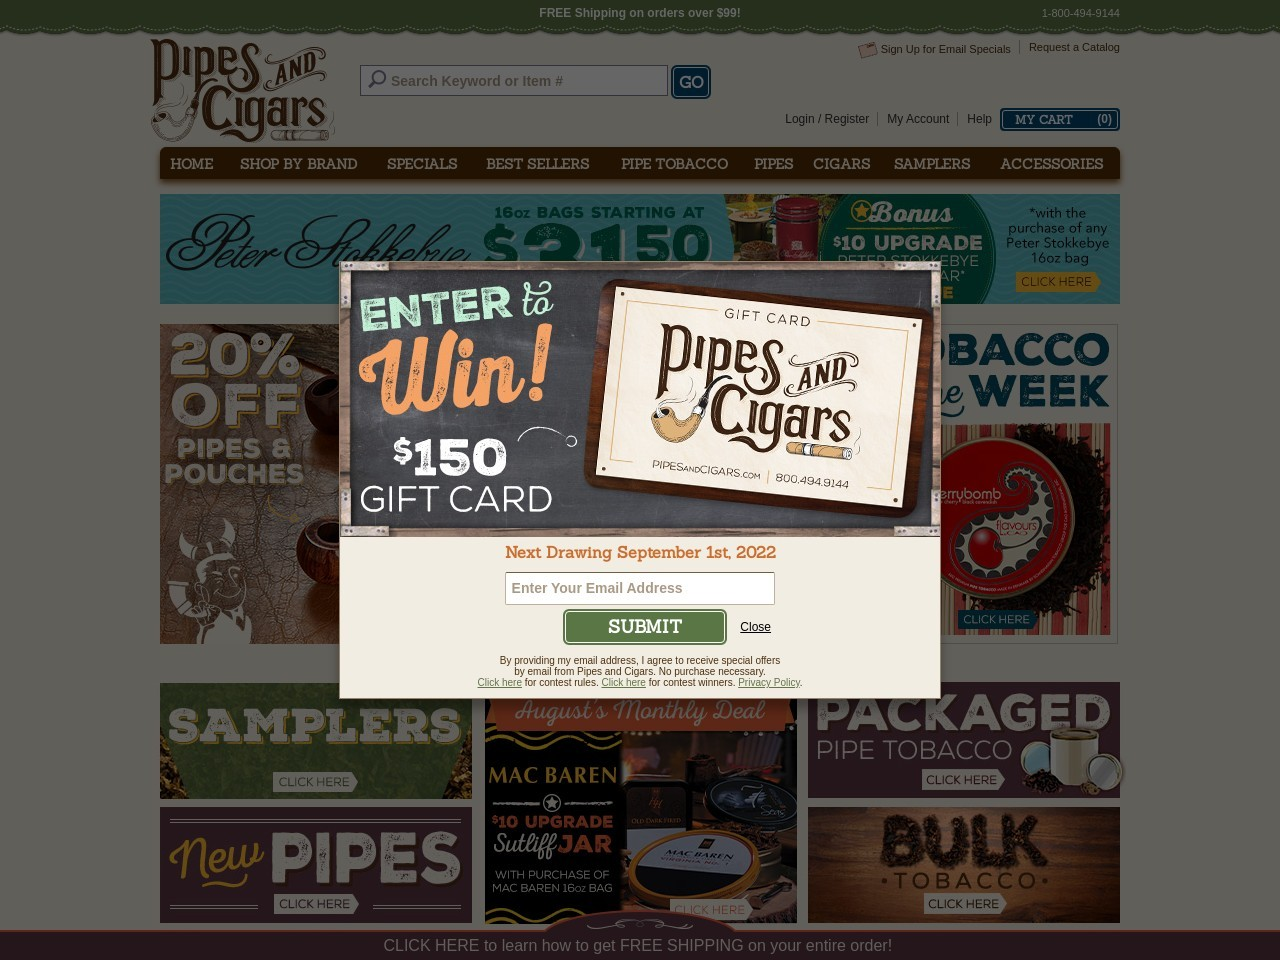 https://www.pipesandcigars.com/sweepstakes/